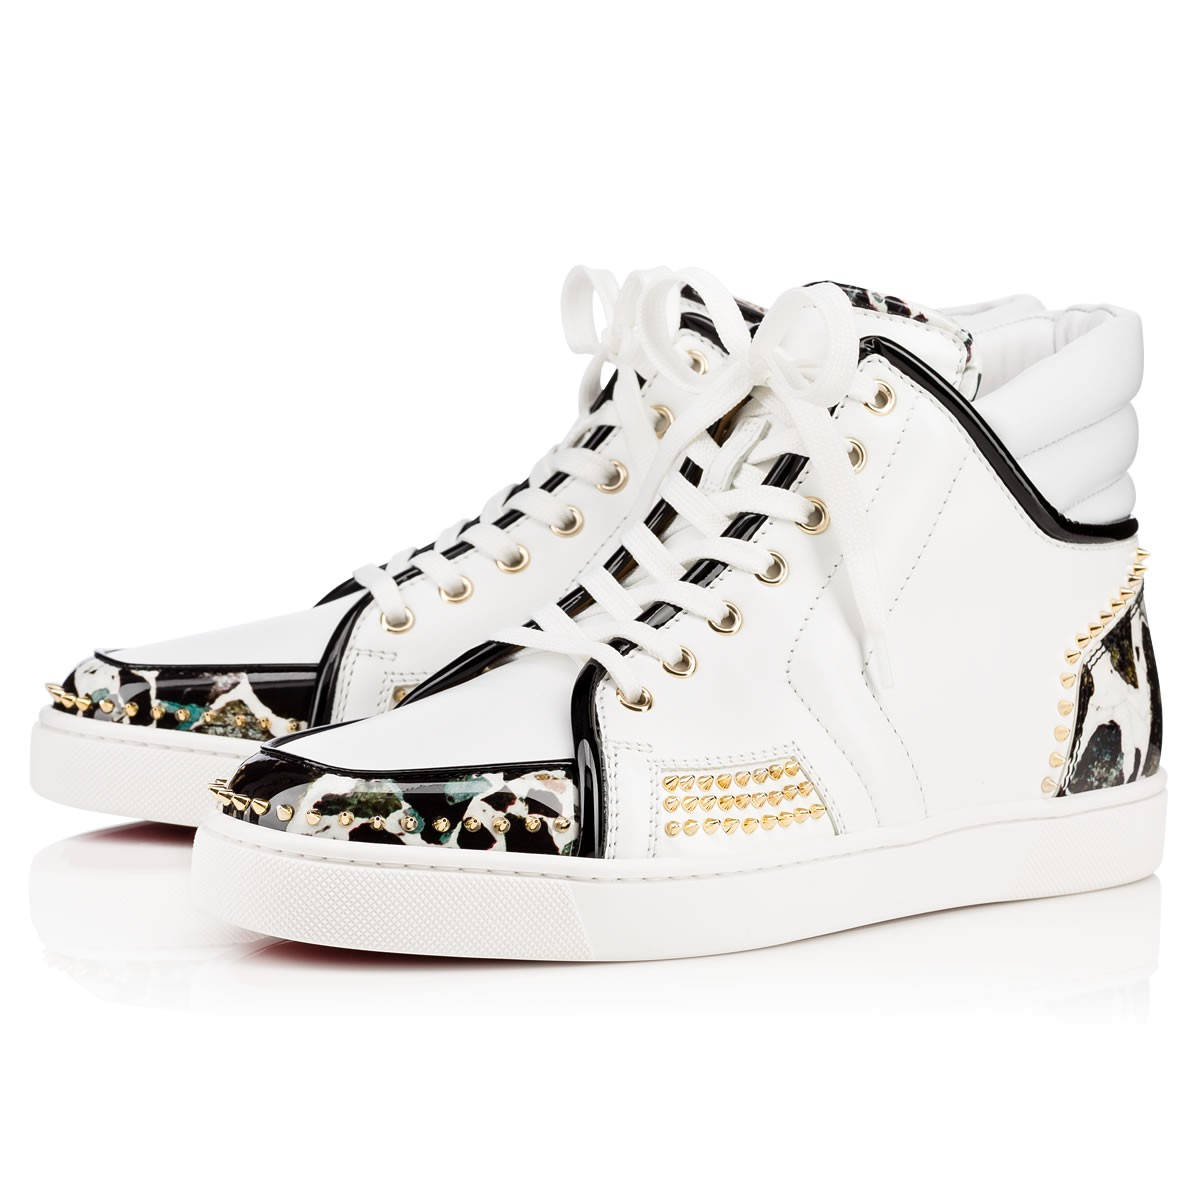 Sporty Dude Low Flat Black-White Leather - Men Shoes - Christian Louboutin